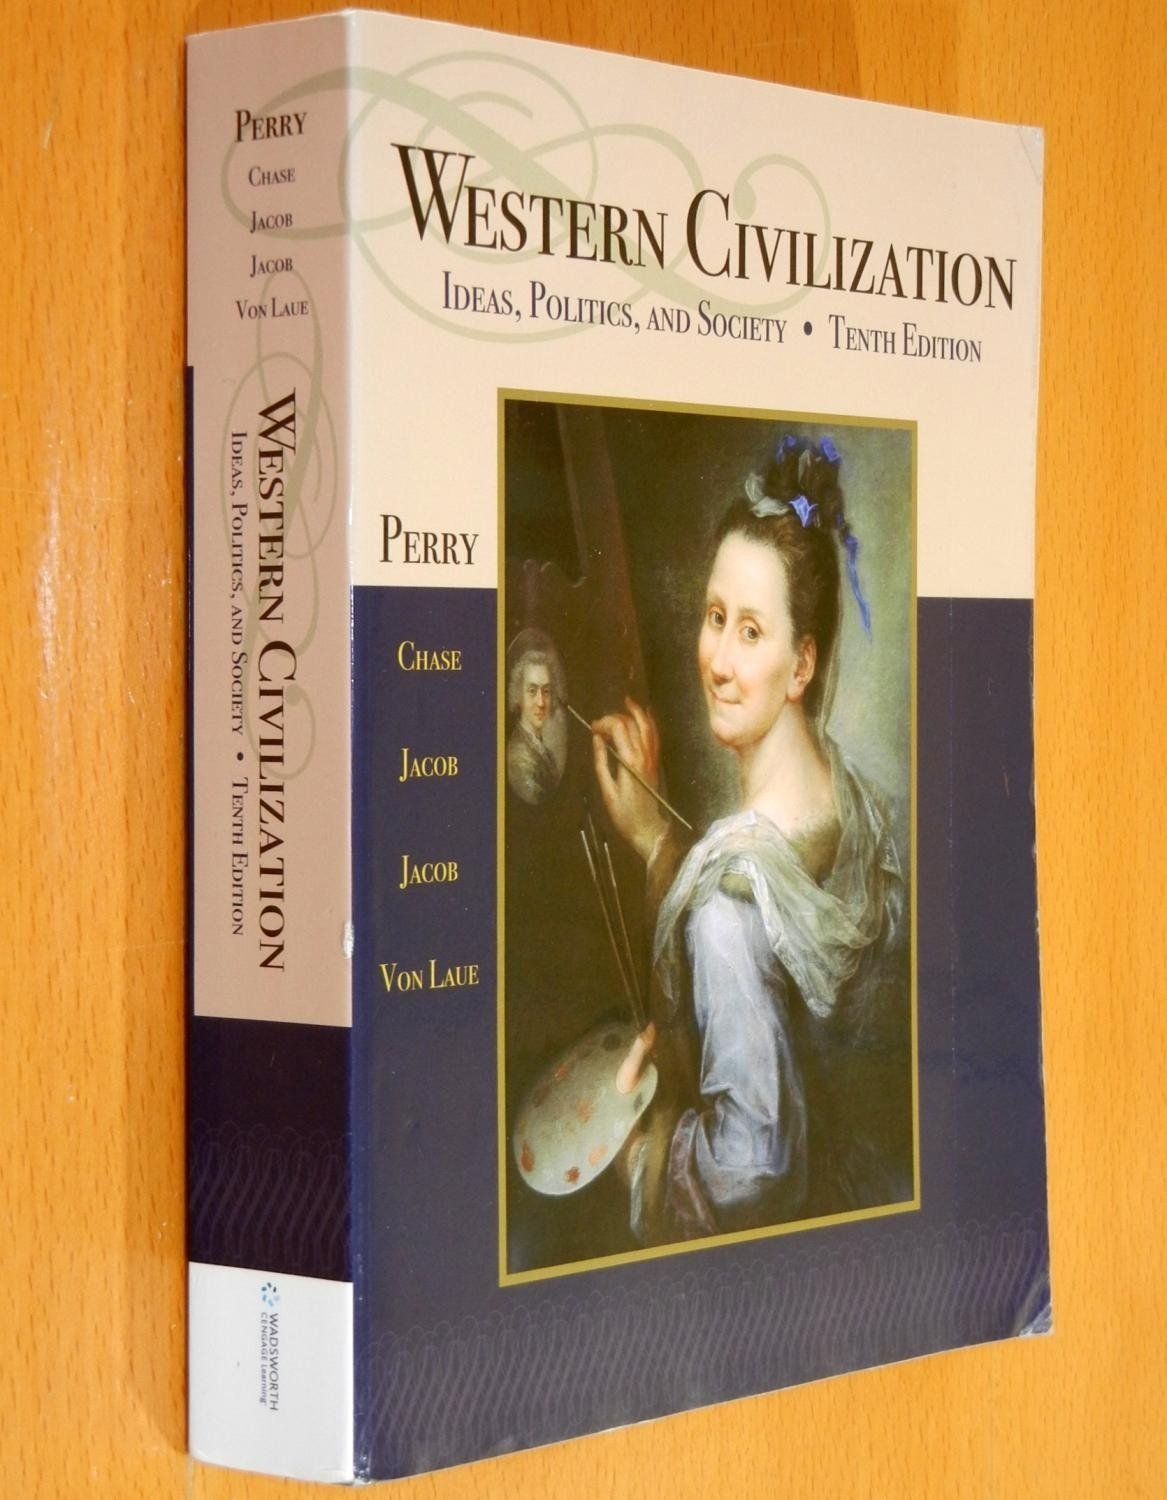 western civilization: ideas, politics, and society (tenth edition